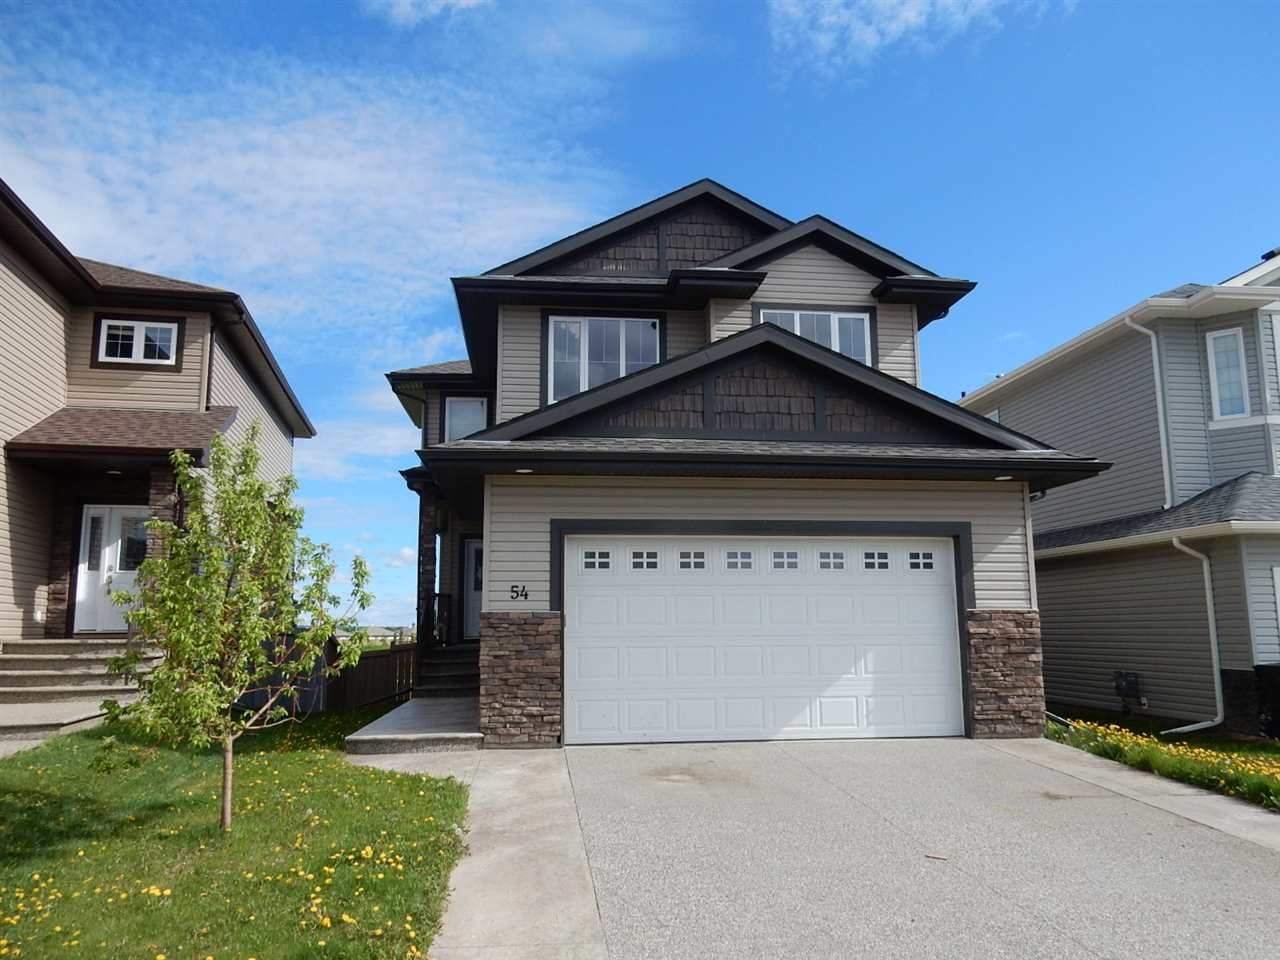 Main Photo: 54 Spruce Ridge Drive: Spruce Grove House for sale : MLS(r) # E4069571